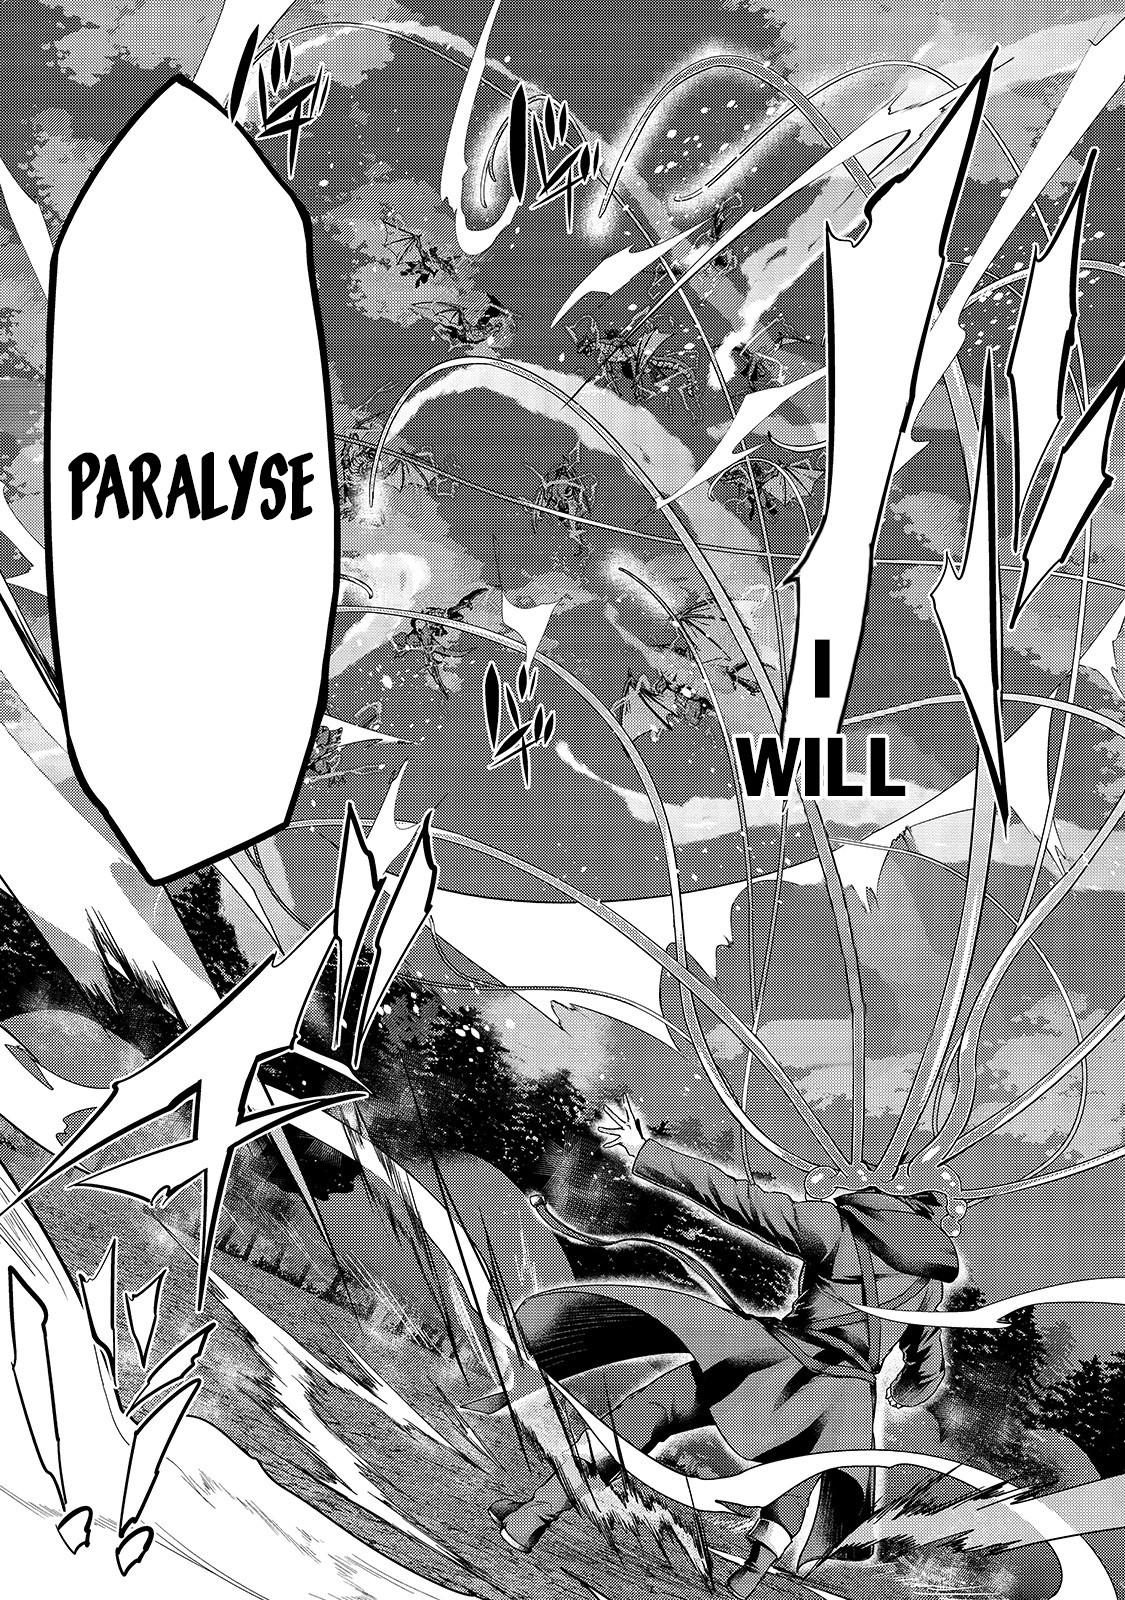 """I Became The Strongest With The Failure Frame """"abnormal State Skill"""" As I Devastated Everything Chapter 19 page 28 - Mangakakalots.com"""